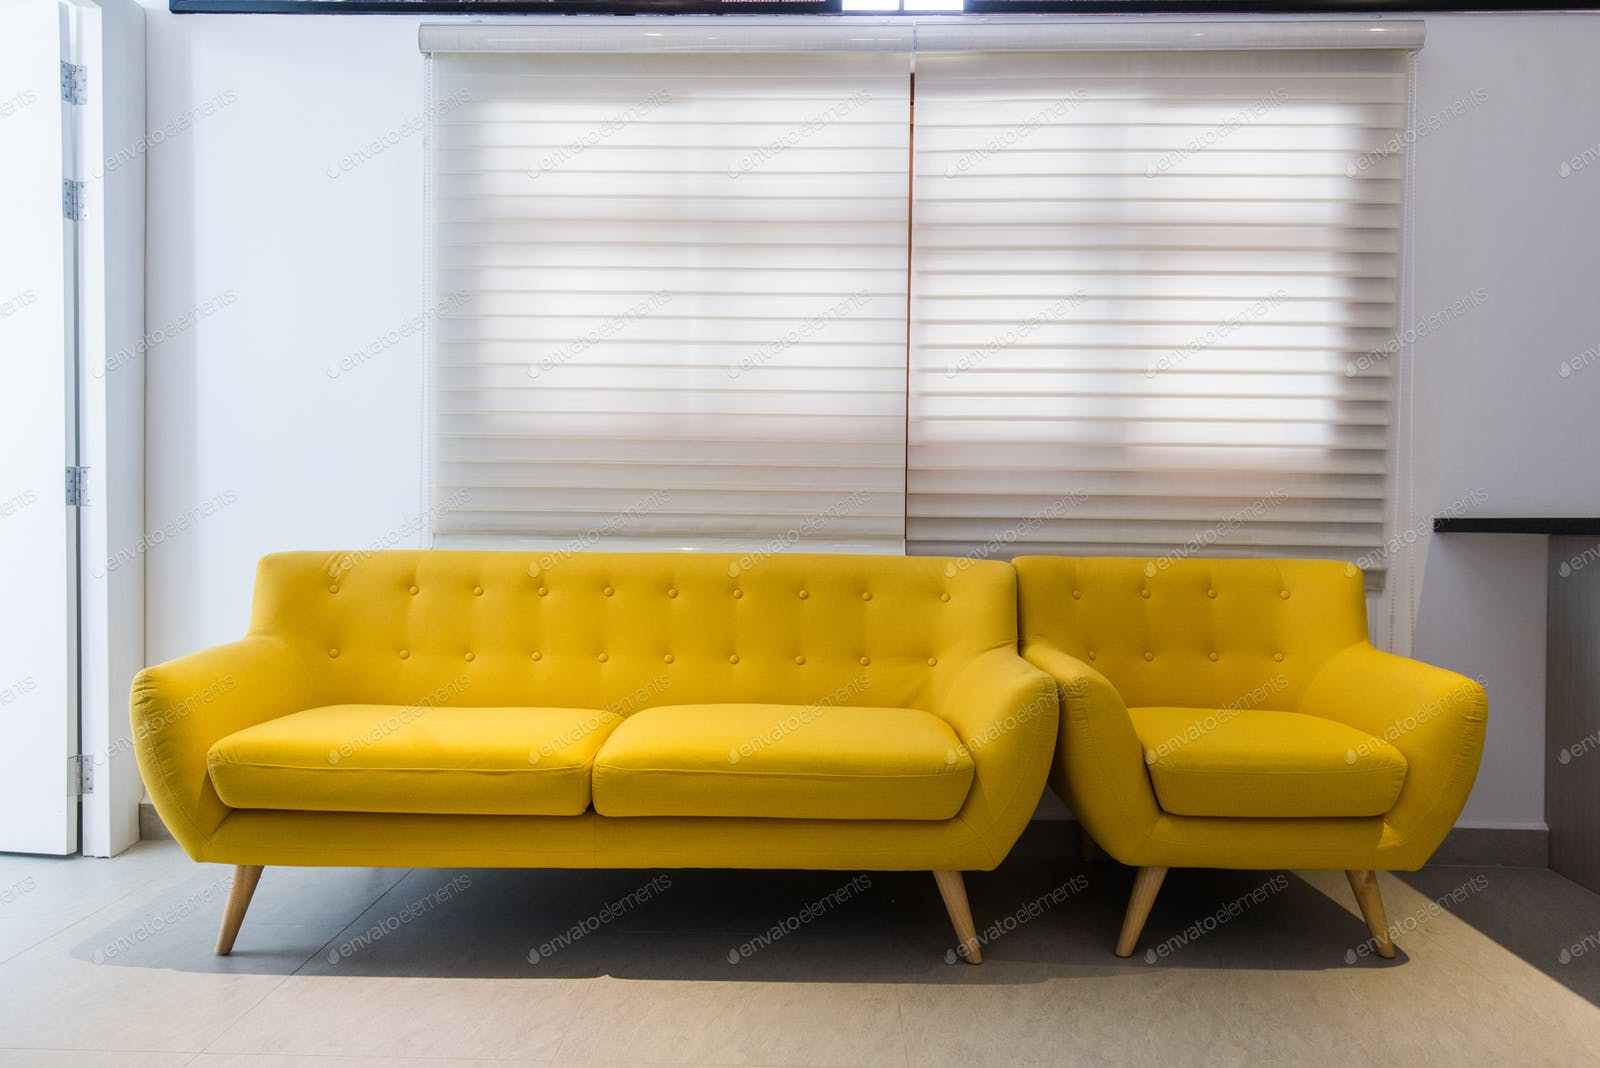 Modern yellow sofa and chair in room interior at home or hotel photo by  romankosolapov on Envato Elements